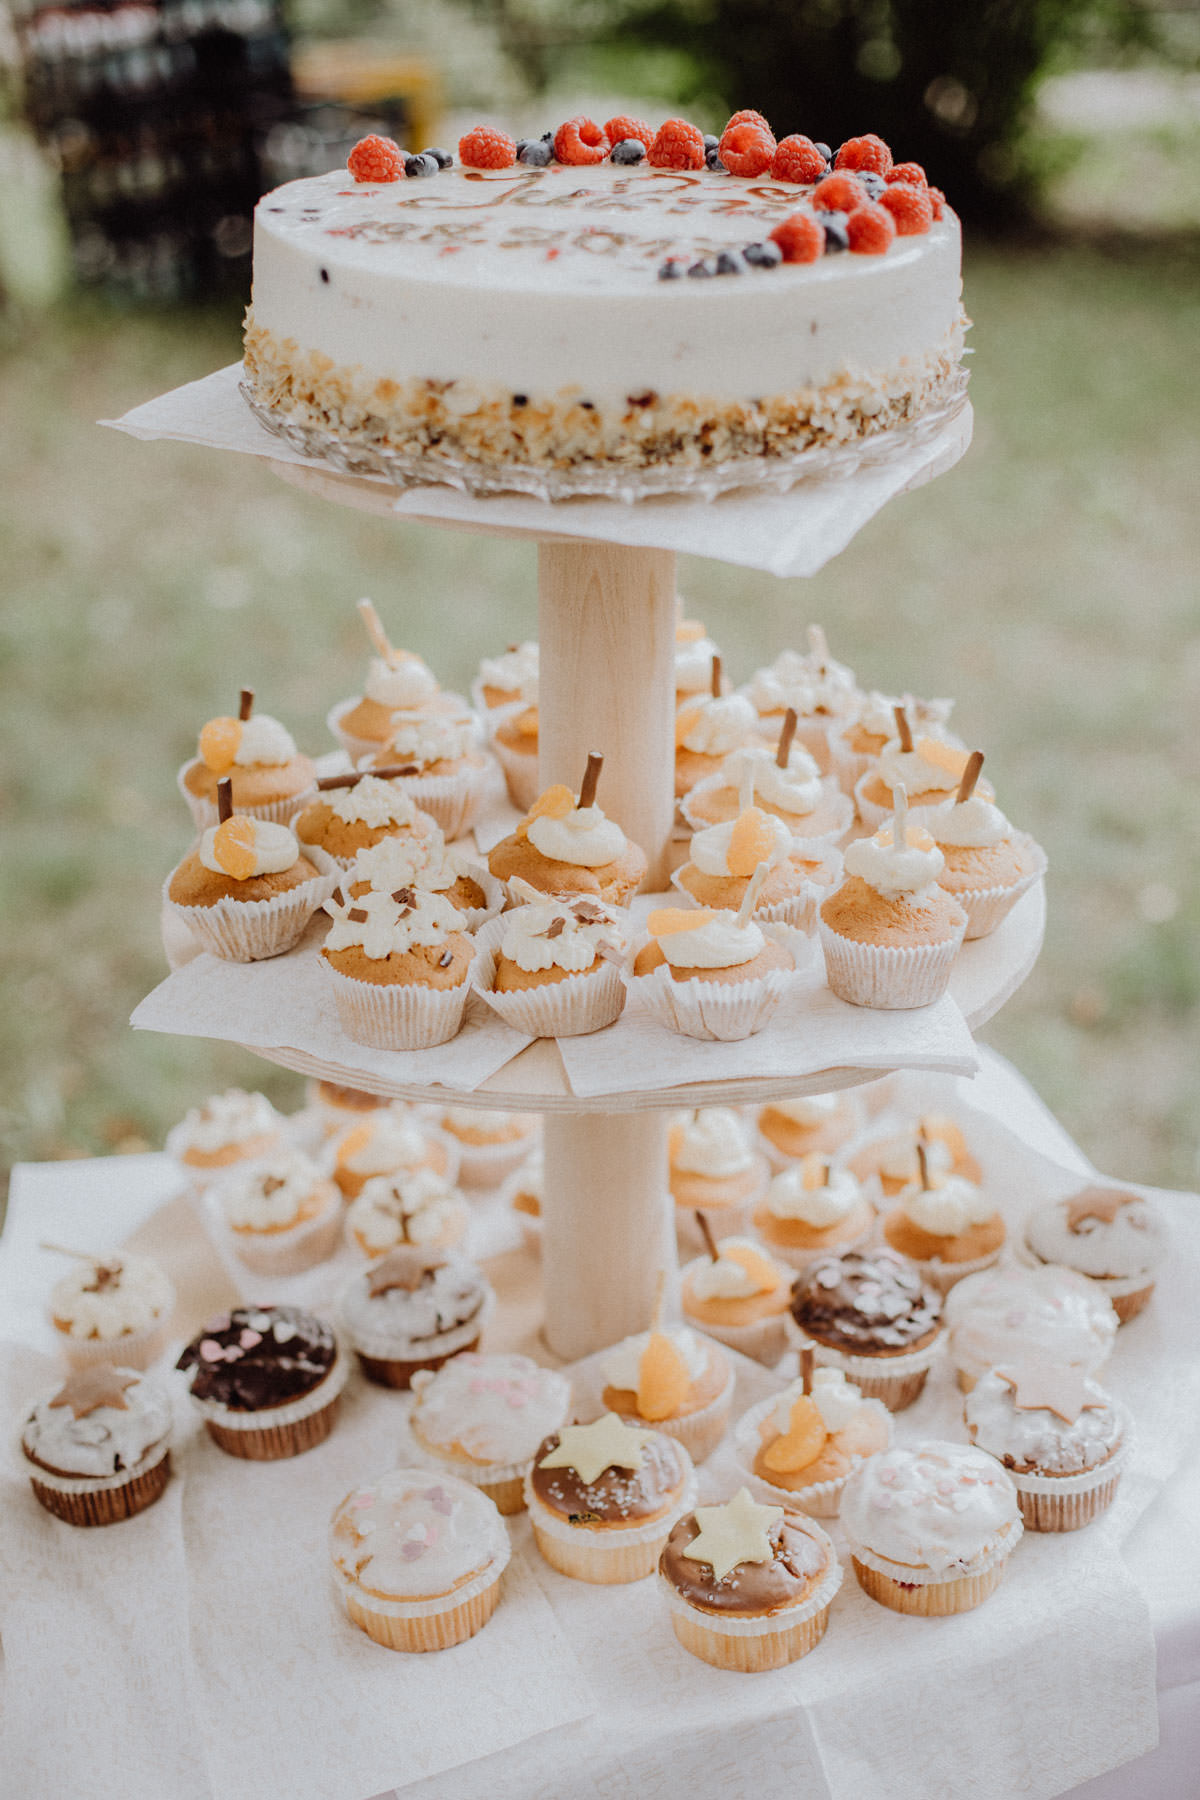 Wedding Cake and muffins